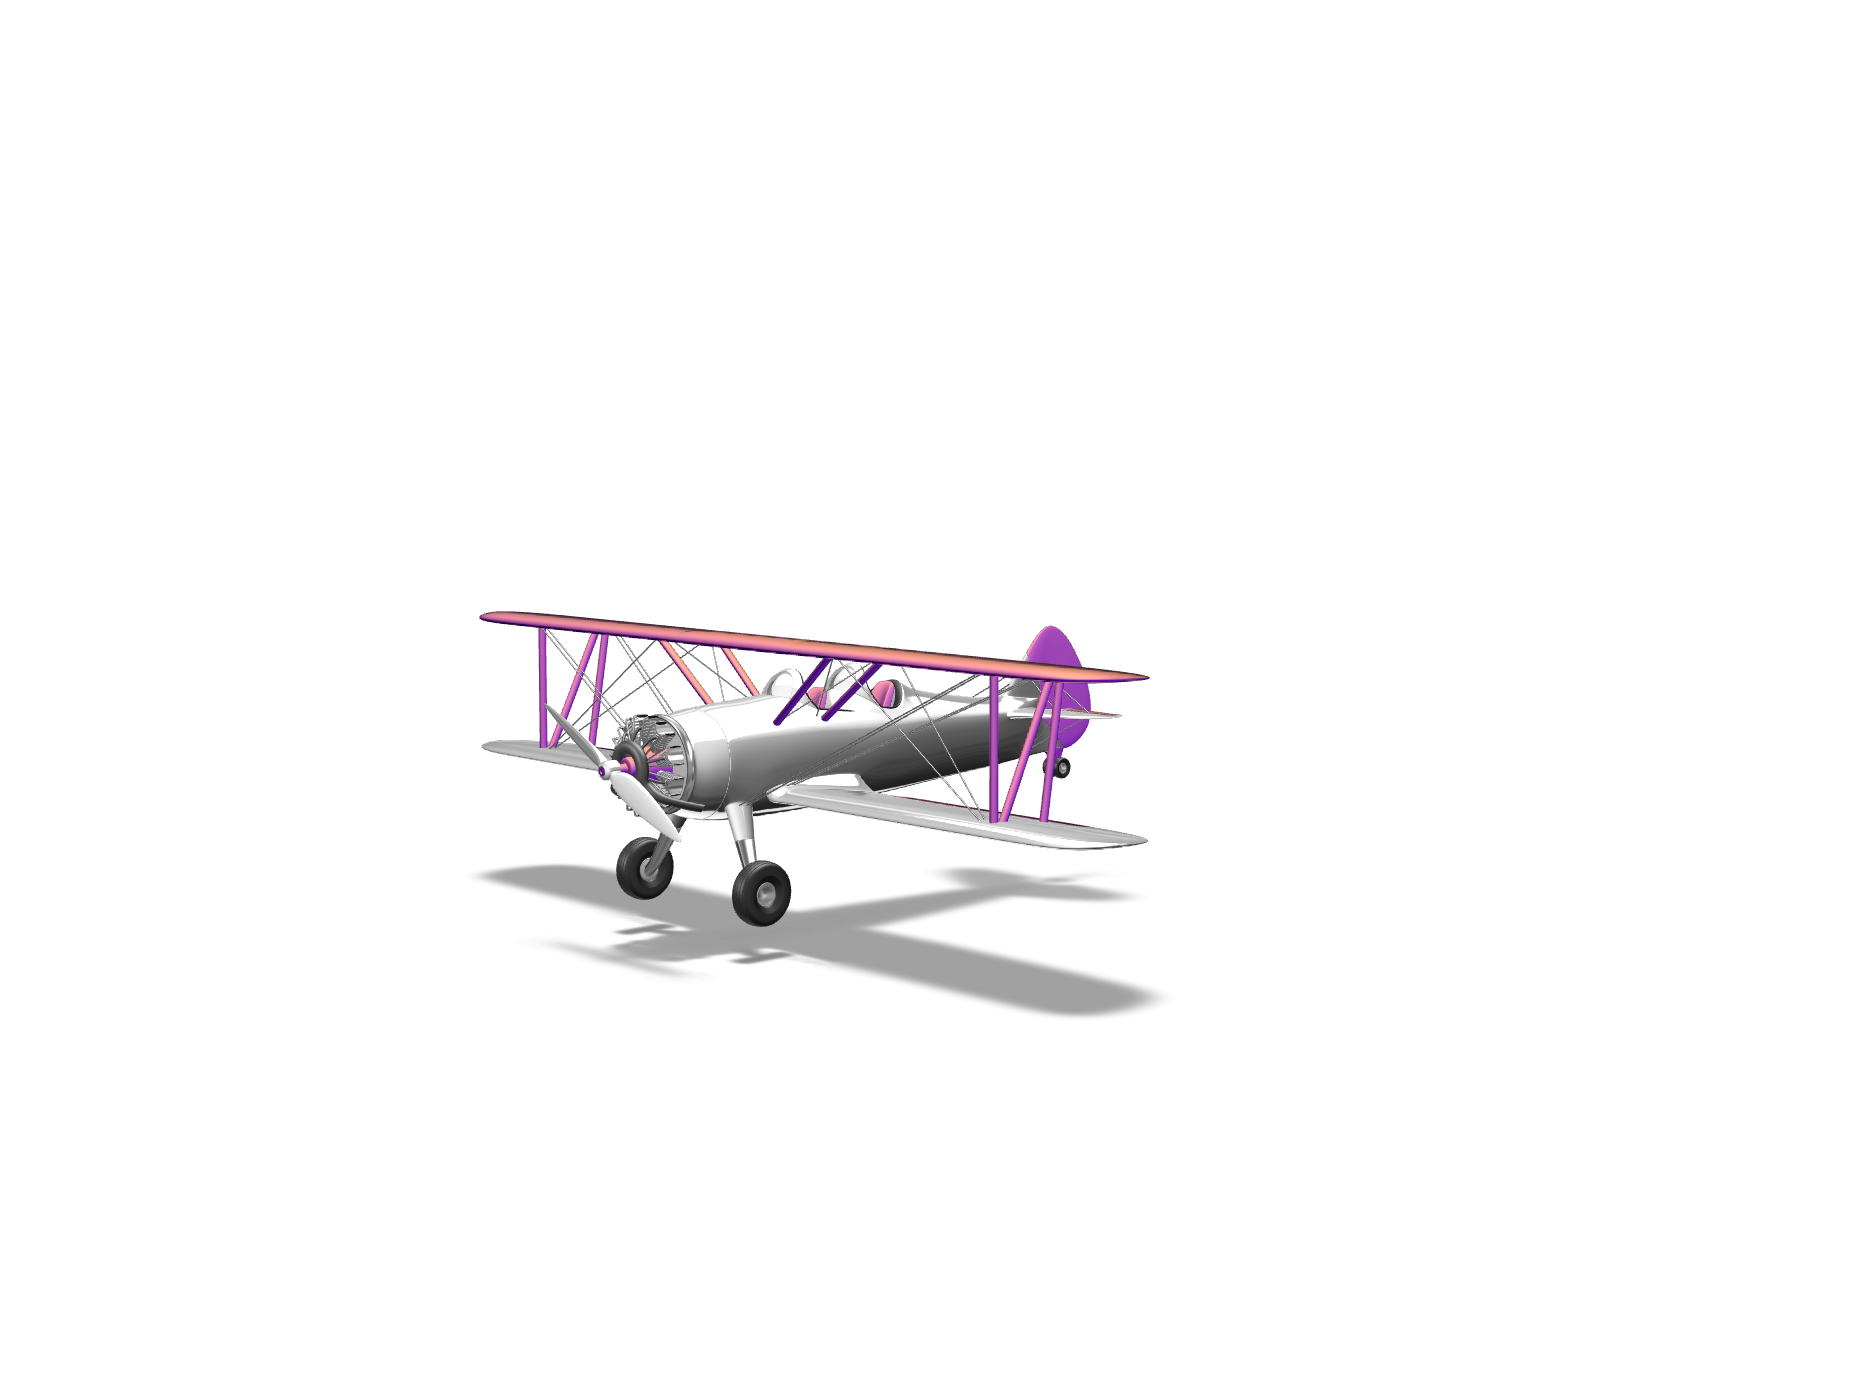 Air Plane - 3D design by jcroake.23 Nov 6, 2017